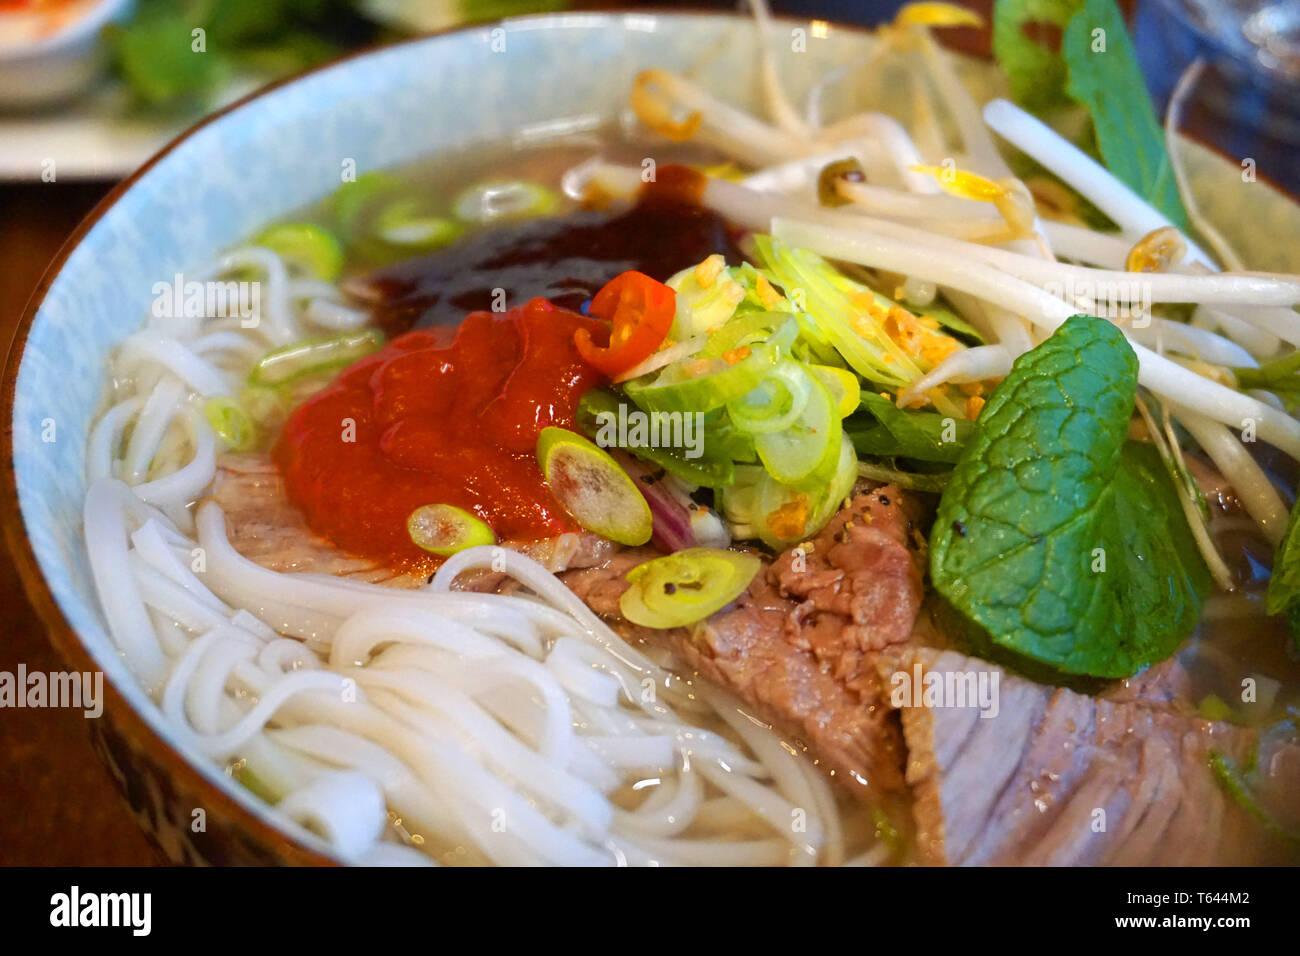 Pho bo - Delicious beef and chicken noodles soup Asian cuisine famous Vietnamese food with beef stock spring onion hoisin sauce soy sauce chilly herb - Stock Image